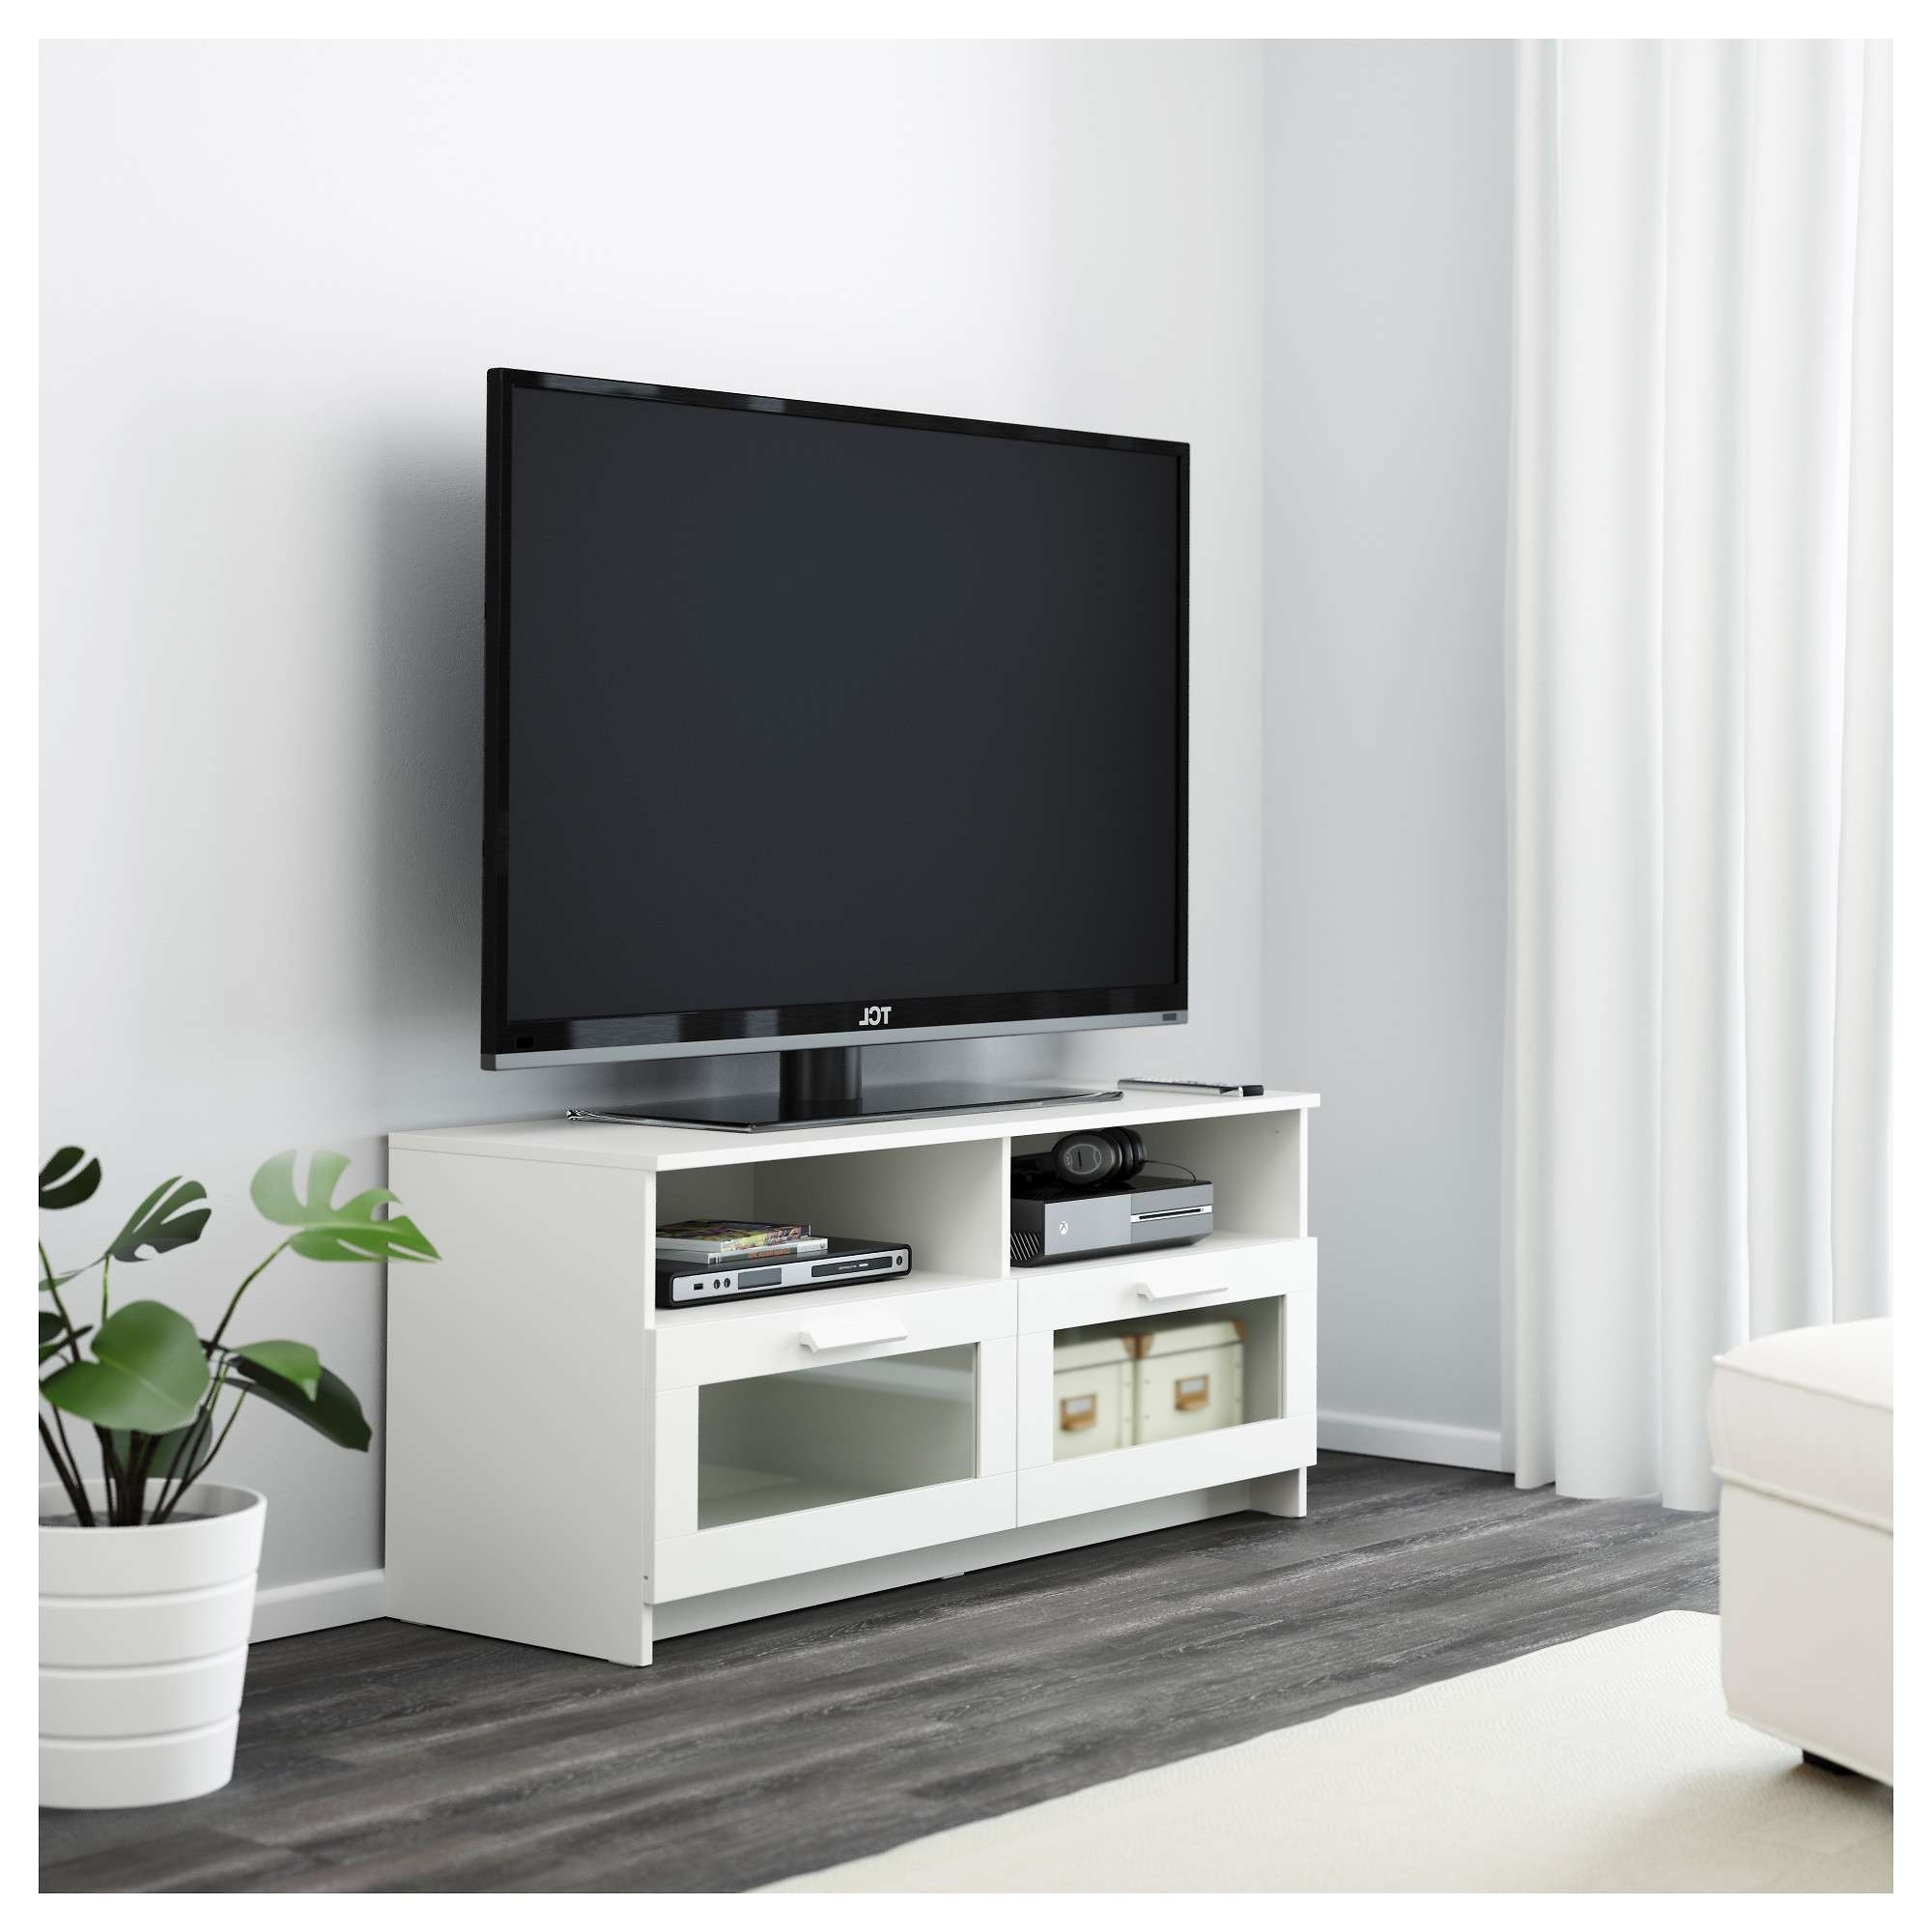 Ikea Tv Stan ~ Theshaggsonline Pertaining To Bench Tv Stands (View 6 of 15)